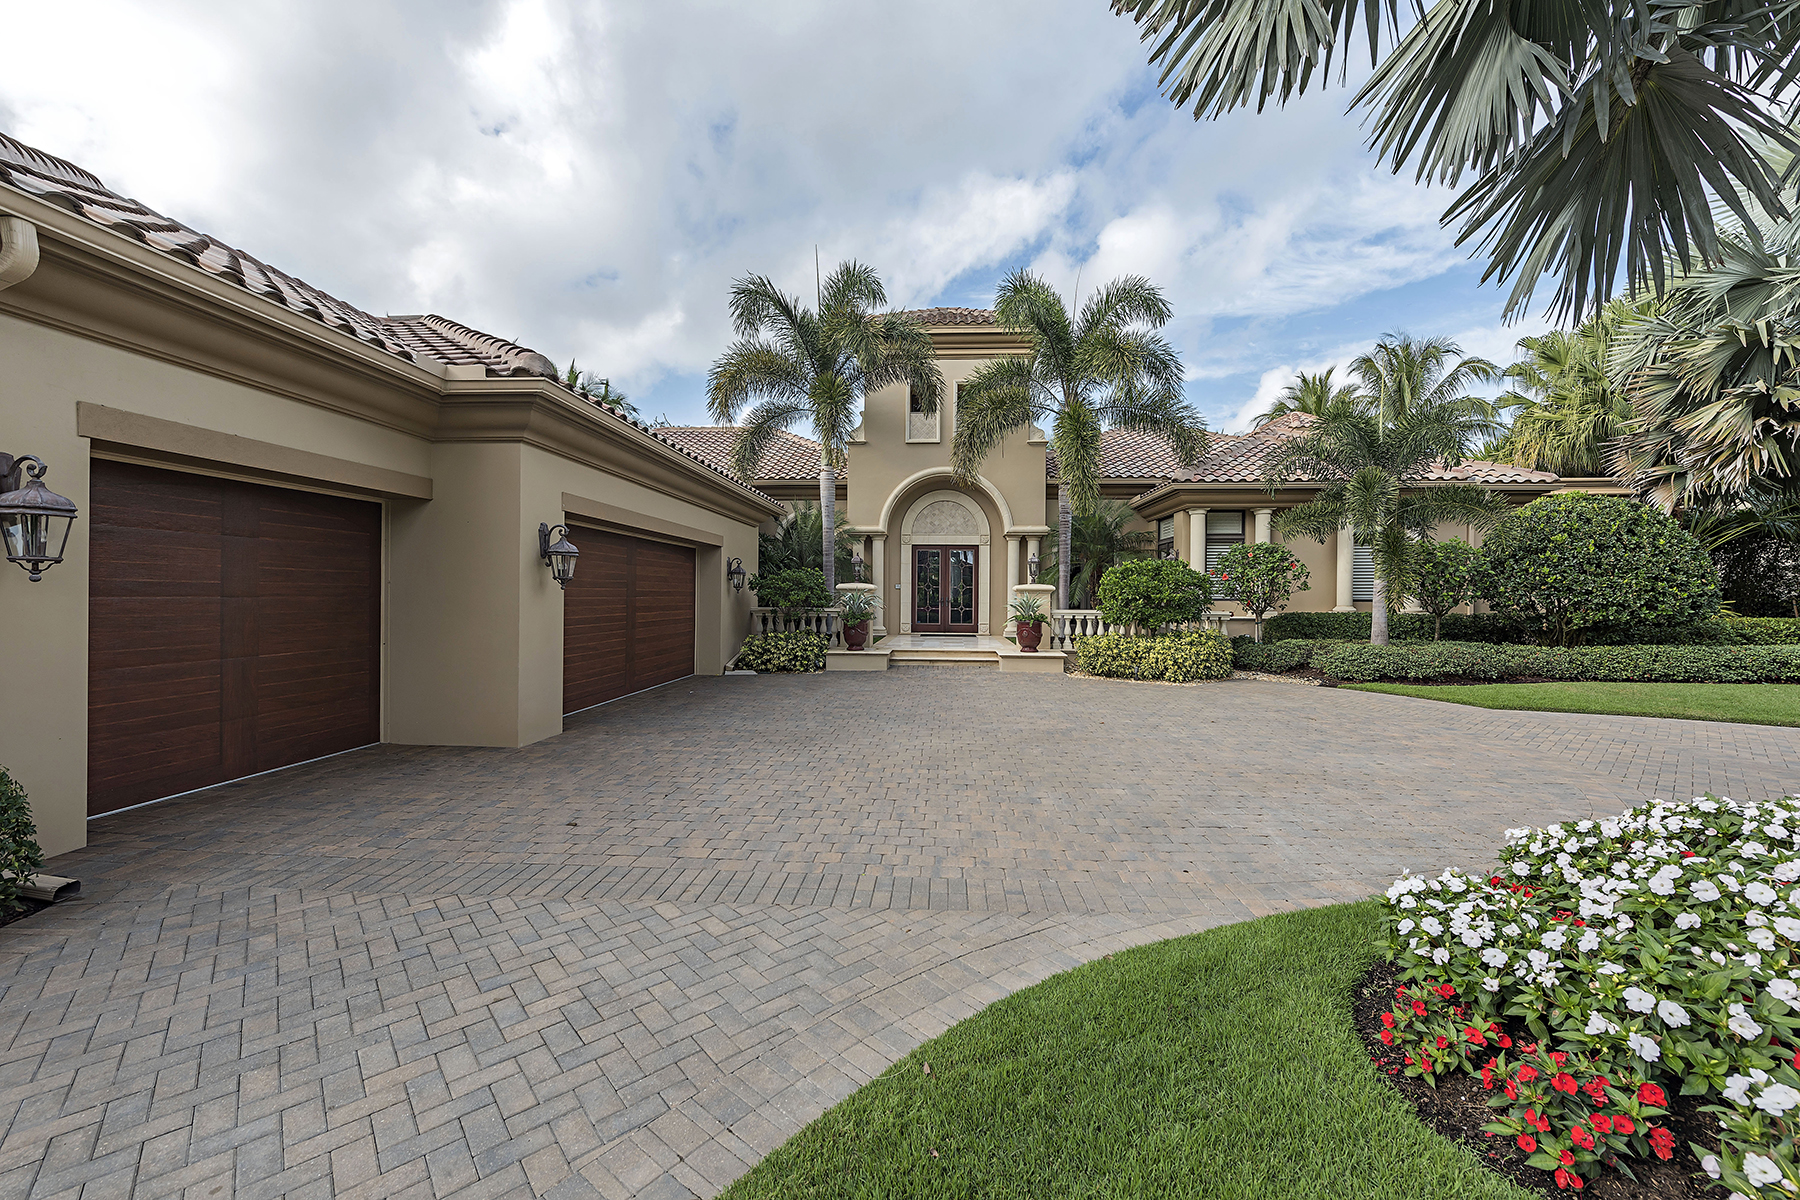 Villa per Vendita alle ore 1425 Nighthawk Pt , Naples, FL 34105 1425 Nighthawk Pt Estuary At Grey Oaks, Naples, Florida, 34105 Stati Uniti